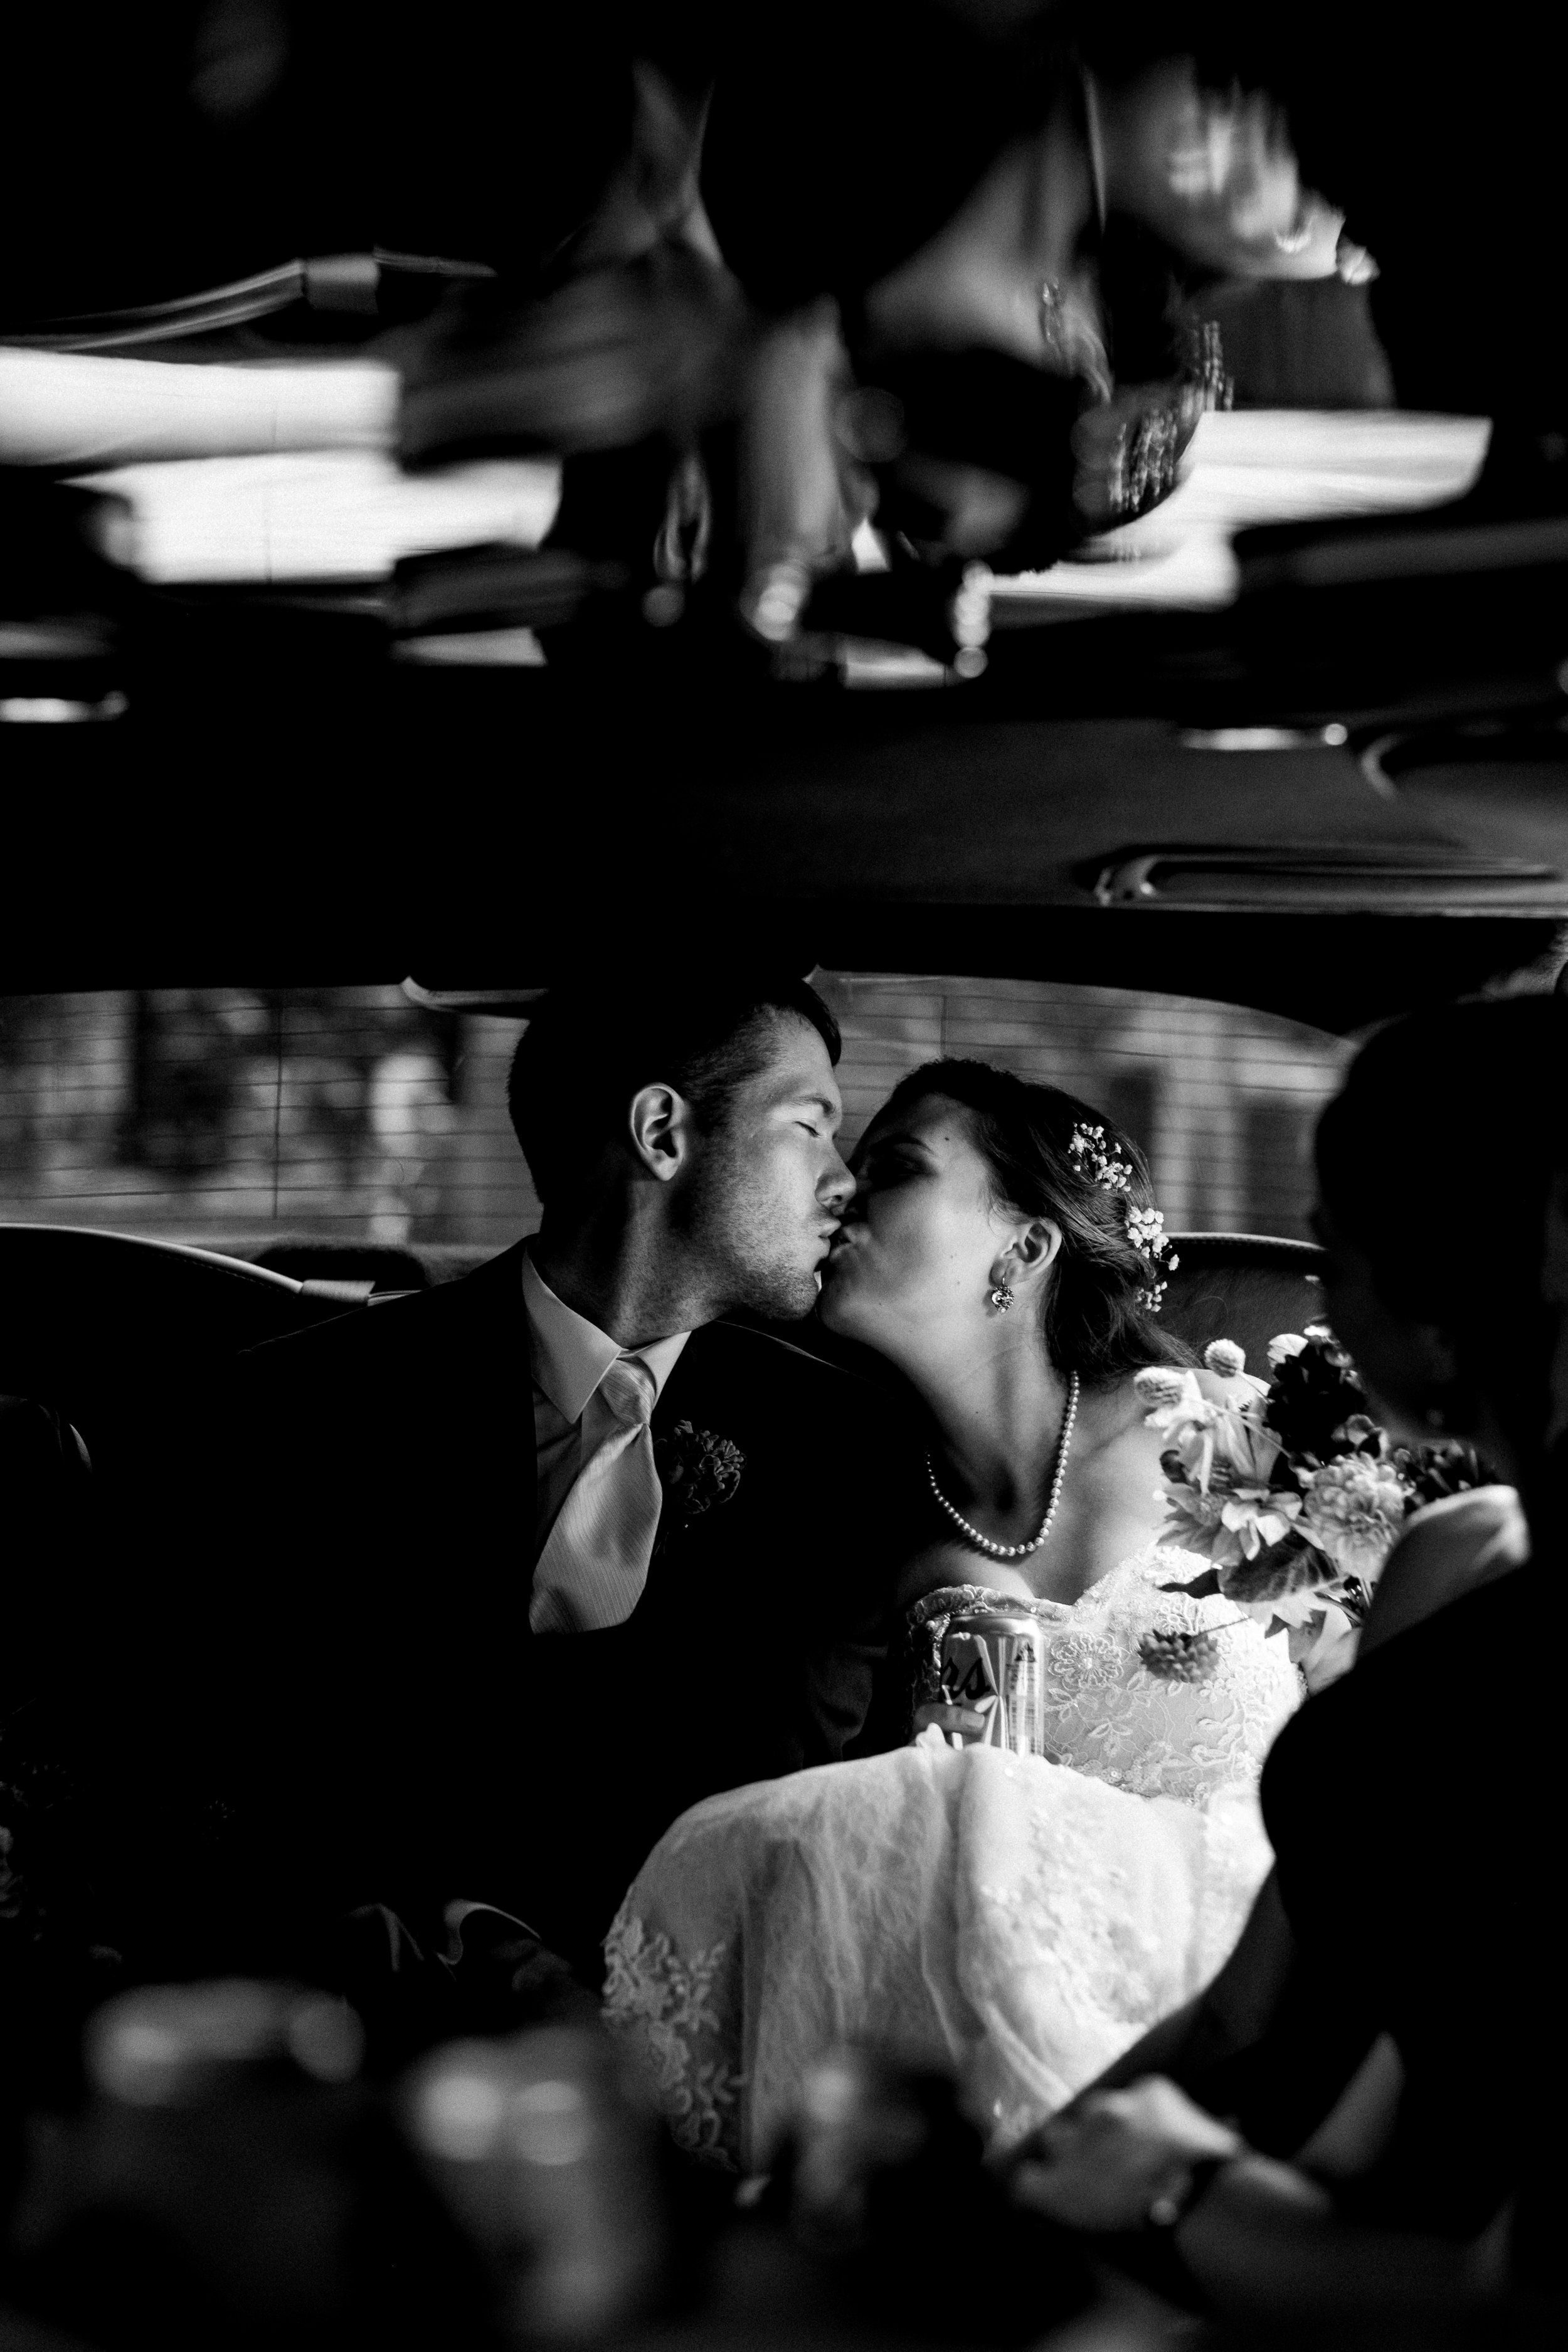 Bride and groom in limo ride on wedding day in Bowling Green, Ohio.